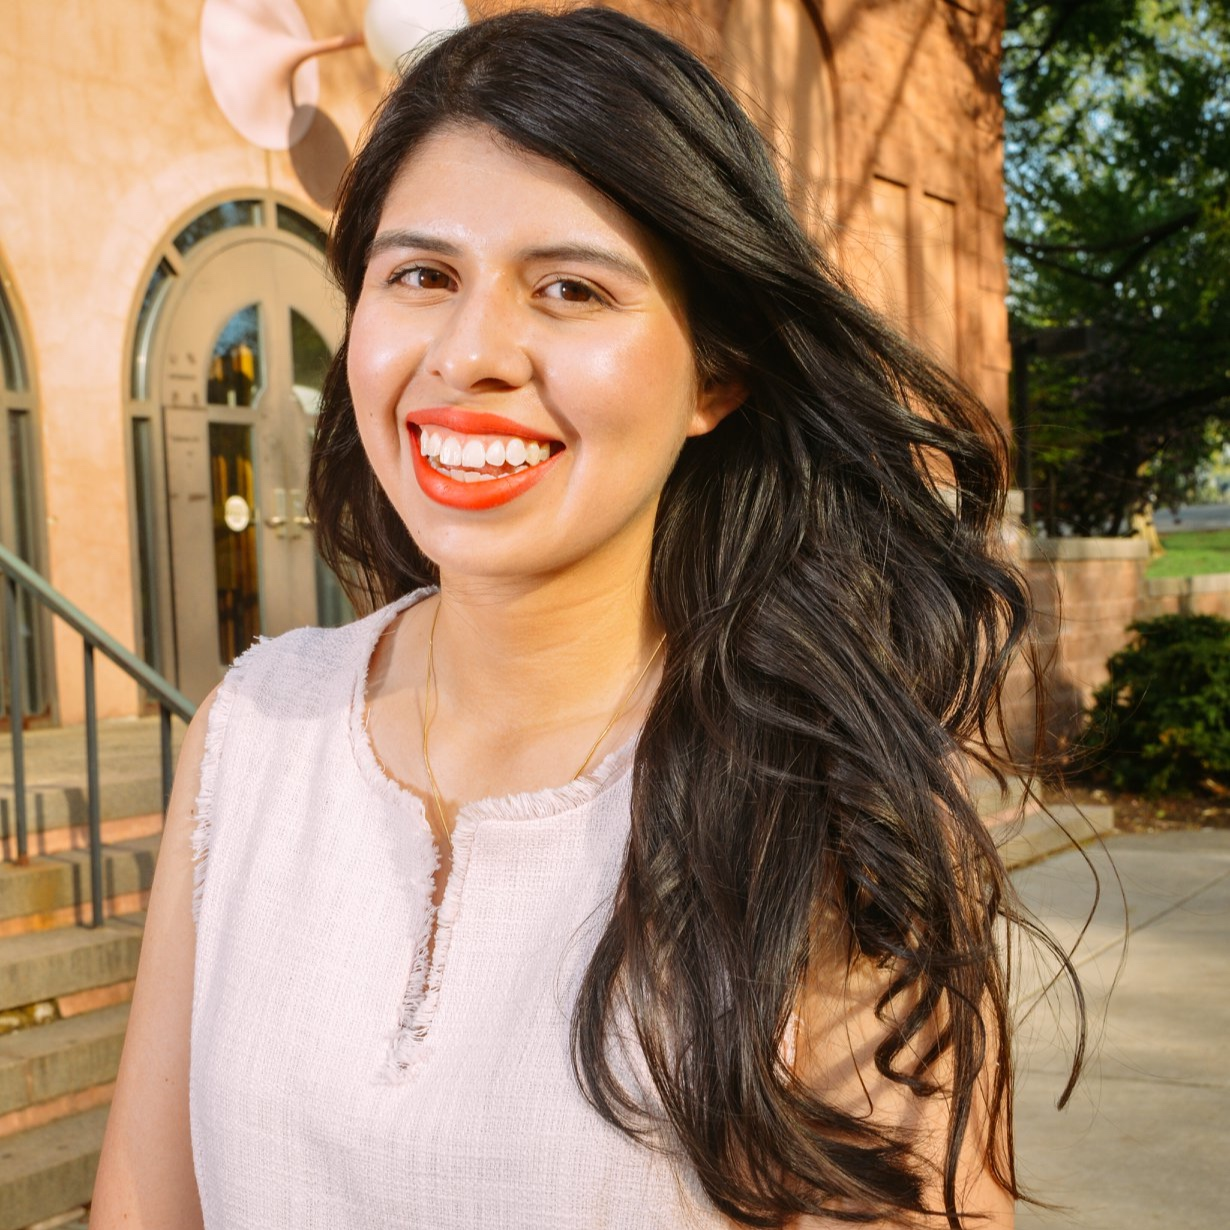 About the writer… - Kim Hoyos is a Latina filmmaker, Digital Strategy Coordinator at MTV Social Impact as well as founder of the Light Leaks. She is primarily a filmmaker, but works to highlight the need for representation in media. At MTV, Hoyos strategizes digital campaigns that connect to social impact issues the MTV audience cares about. Hoyos has written for Refinery29, BUST Magazine, We Are Mitu, and has had her visual work published in Brit + Co., CNBC, HelloFlo, and more. Additionally, she's done speaking engagements on topics ranging from mental health to creativity to representation in film for Urban Outfitters, Firefox, and at various film festivals as well as universities.